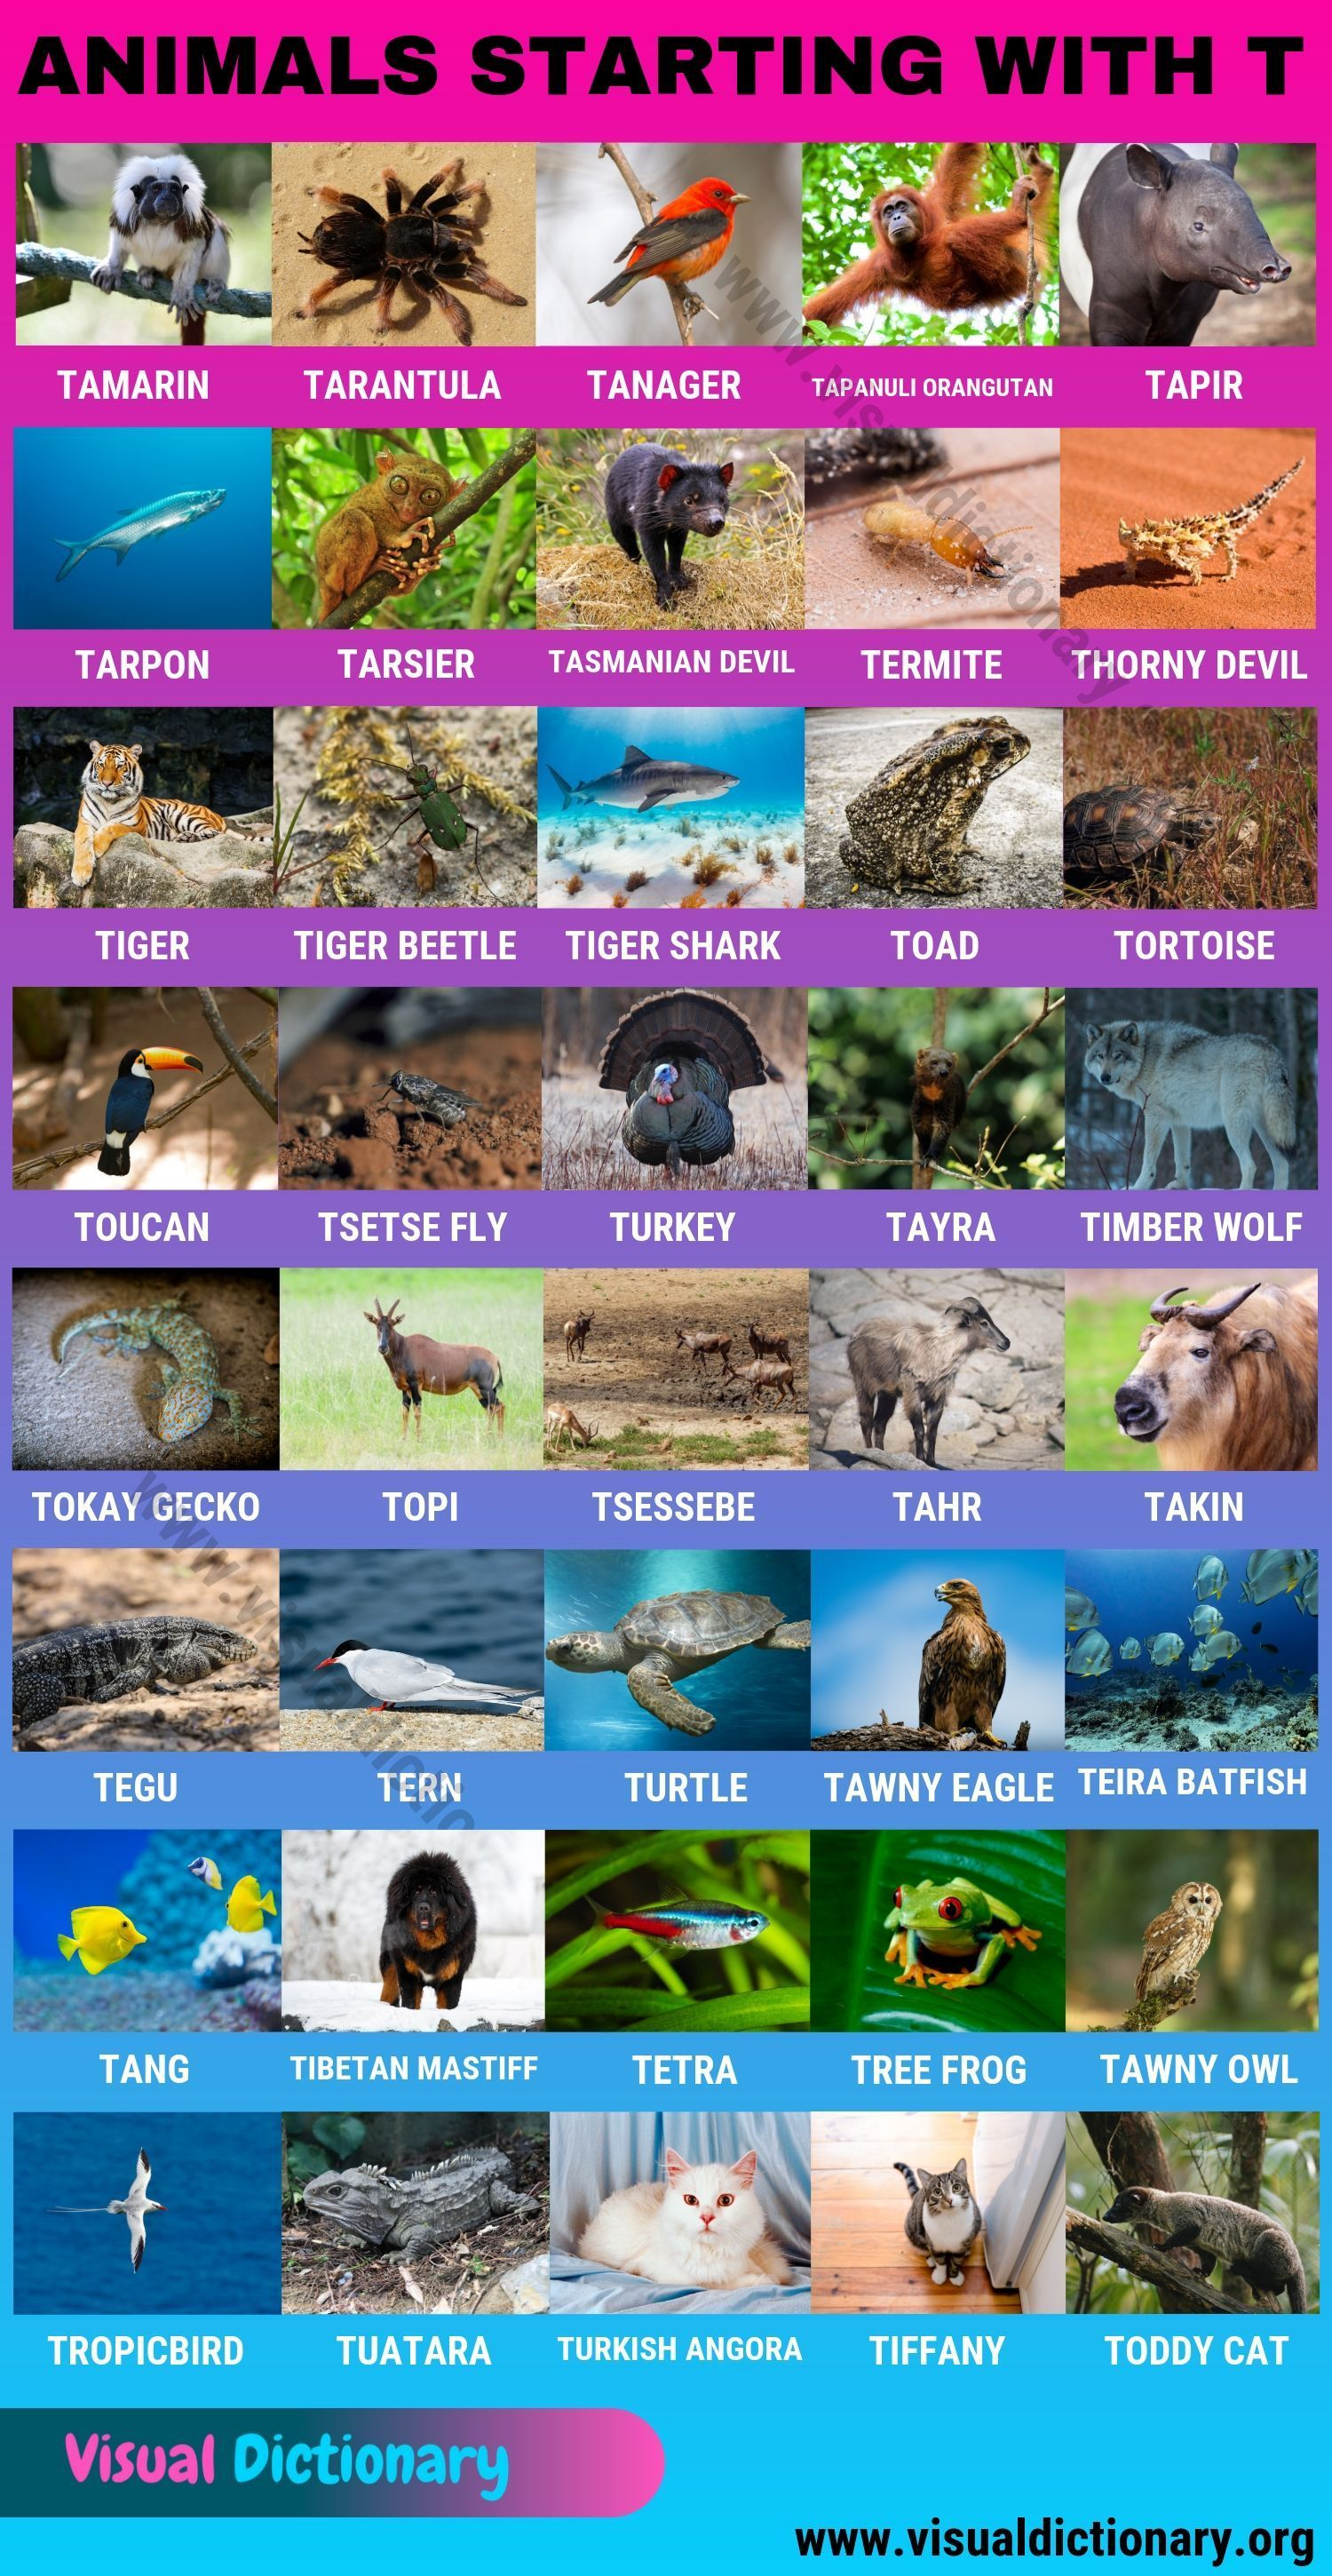 Animals That Start With T Useful List Of 40 Animals Starting With T Visual Dictionary Animals Starting With T Visual Dictionary Animals Name In English